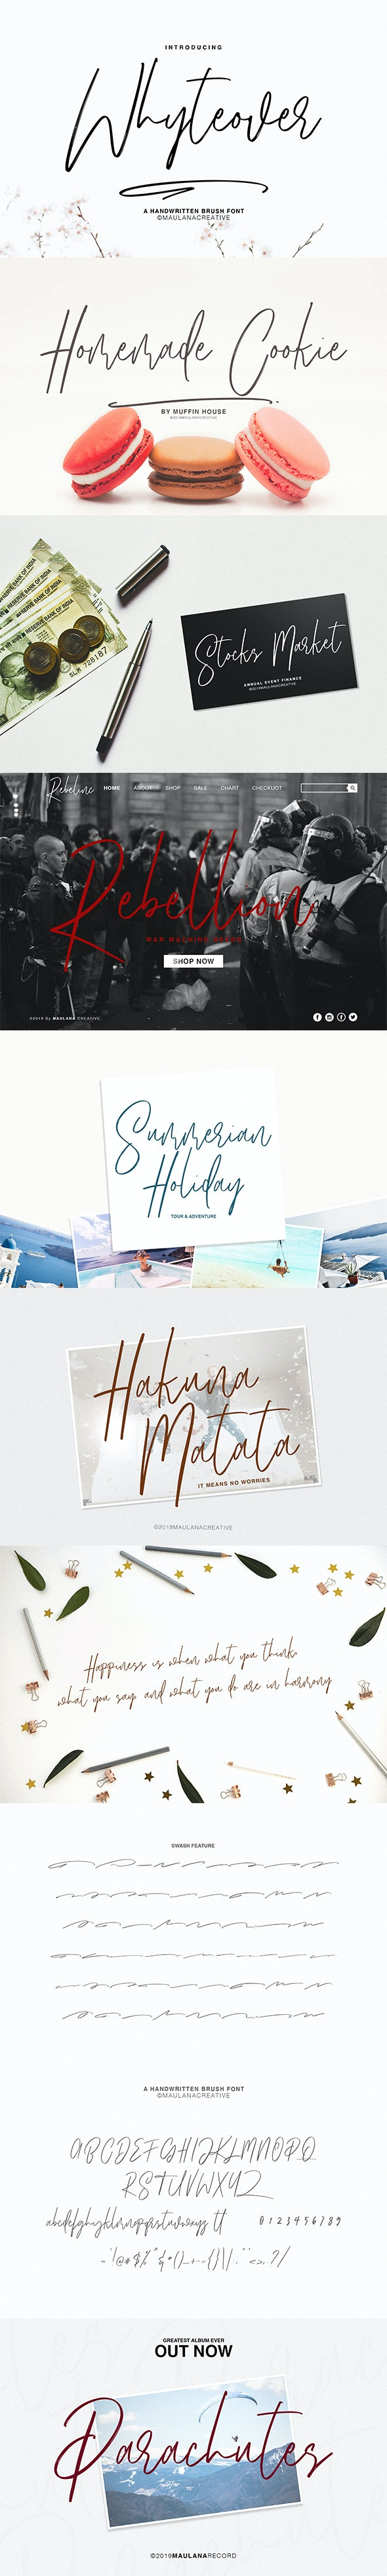 Whyteover Typeface - Hand-writing Script